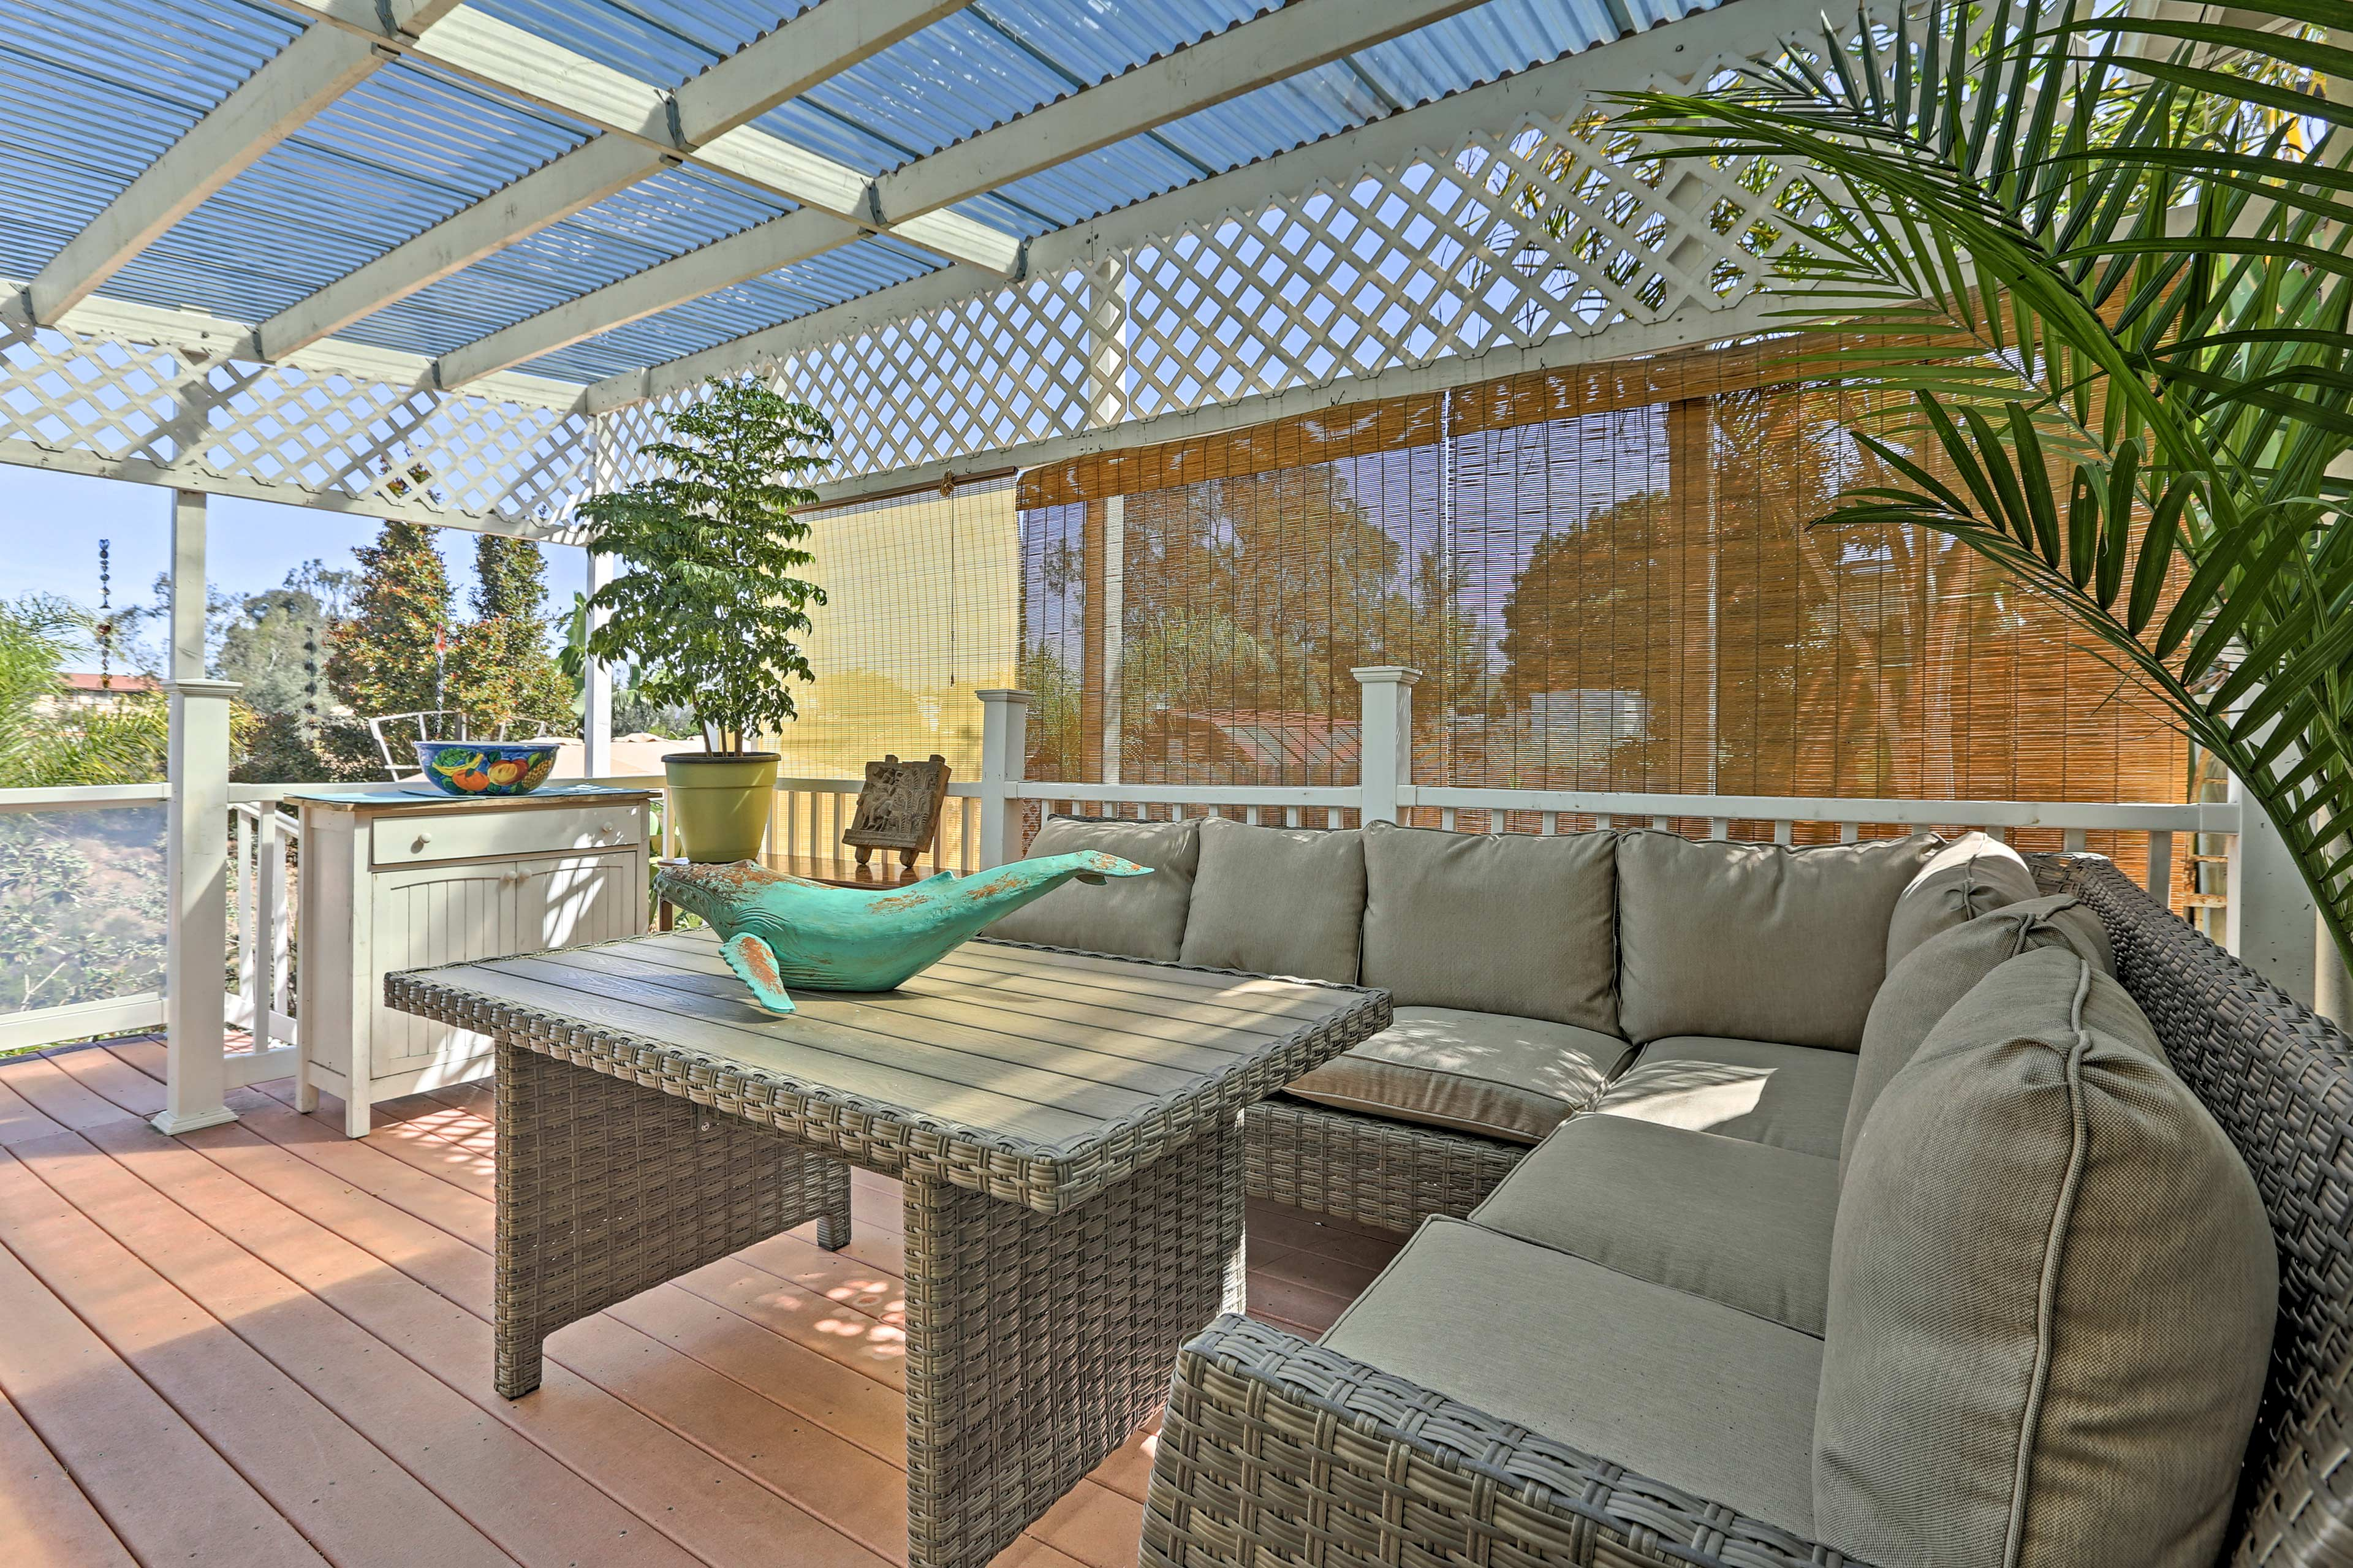 Spend evenings relaxing on the covered porch, with comfortable outdoor seating.